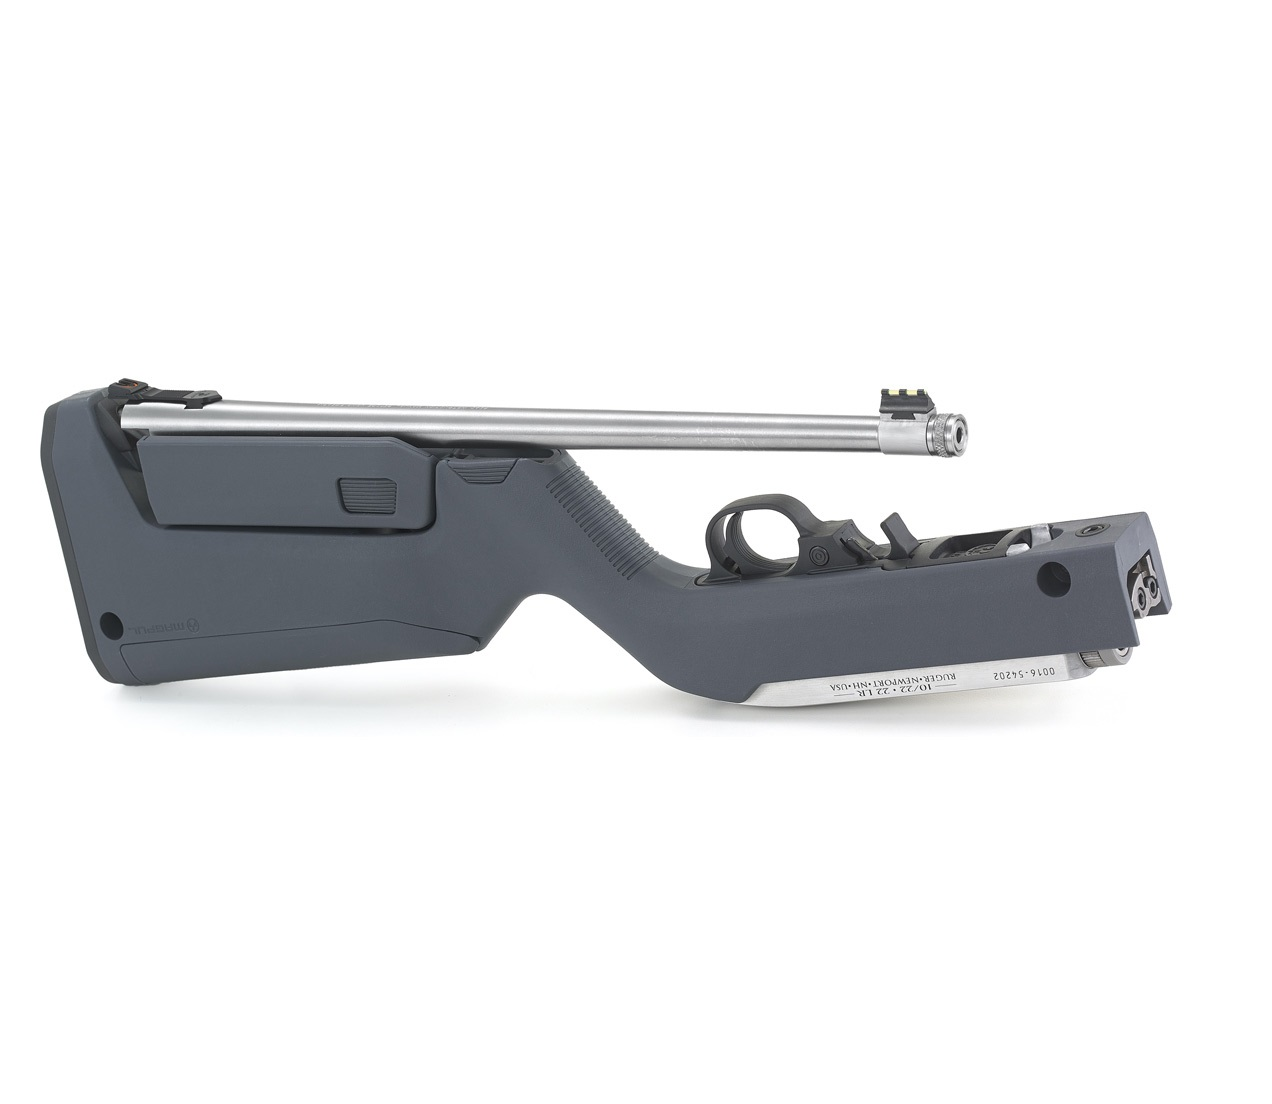 RUGER RELEASES NEW TAKEDOWN 10/22 WITH MAGPUL X-22 BACKPACKER